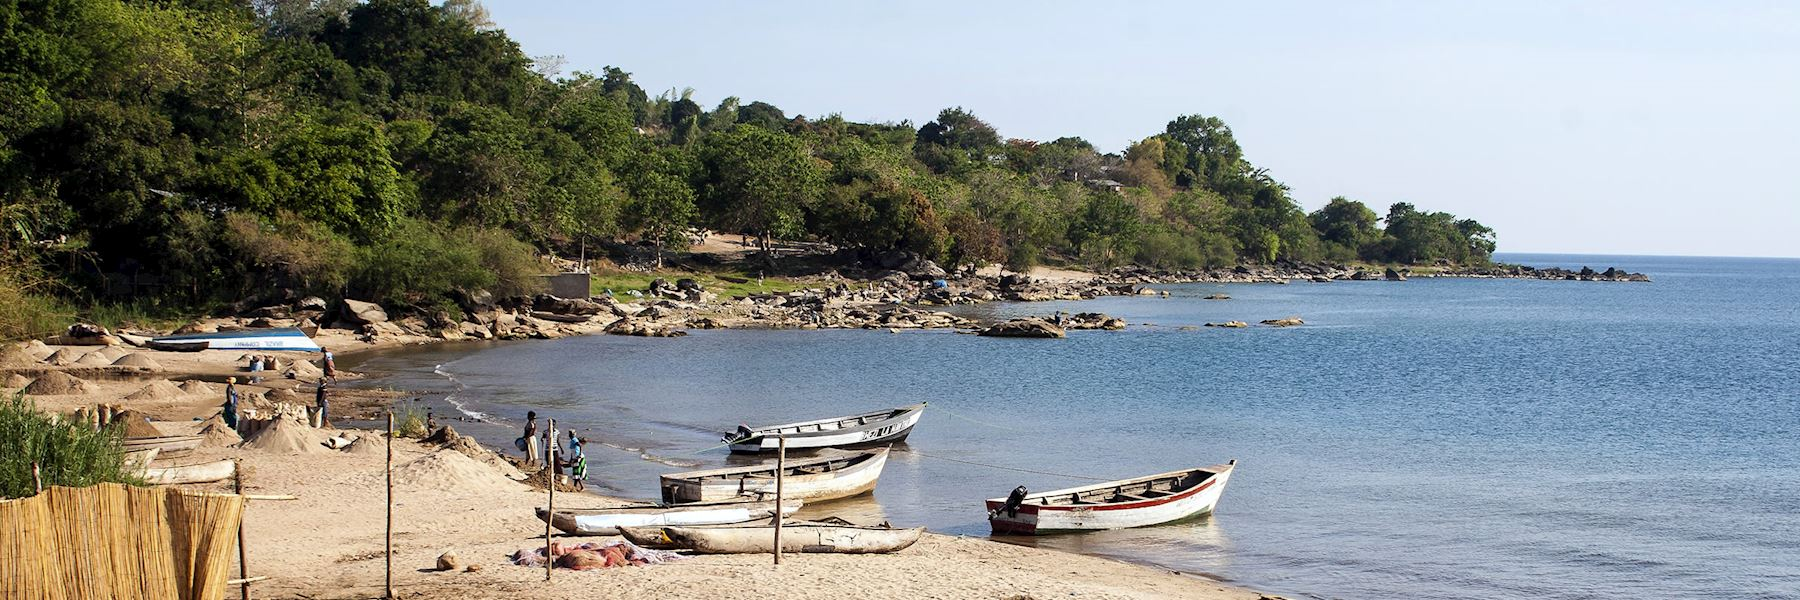 When is the best time to visit Malawi?